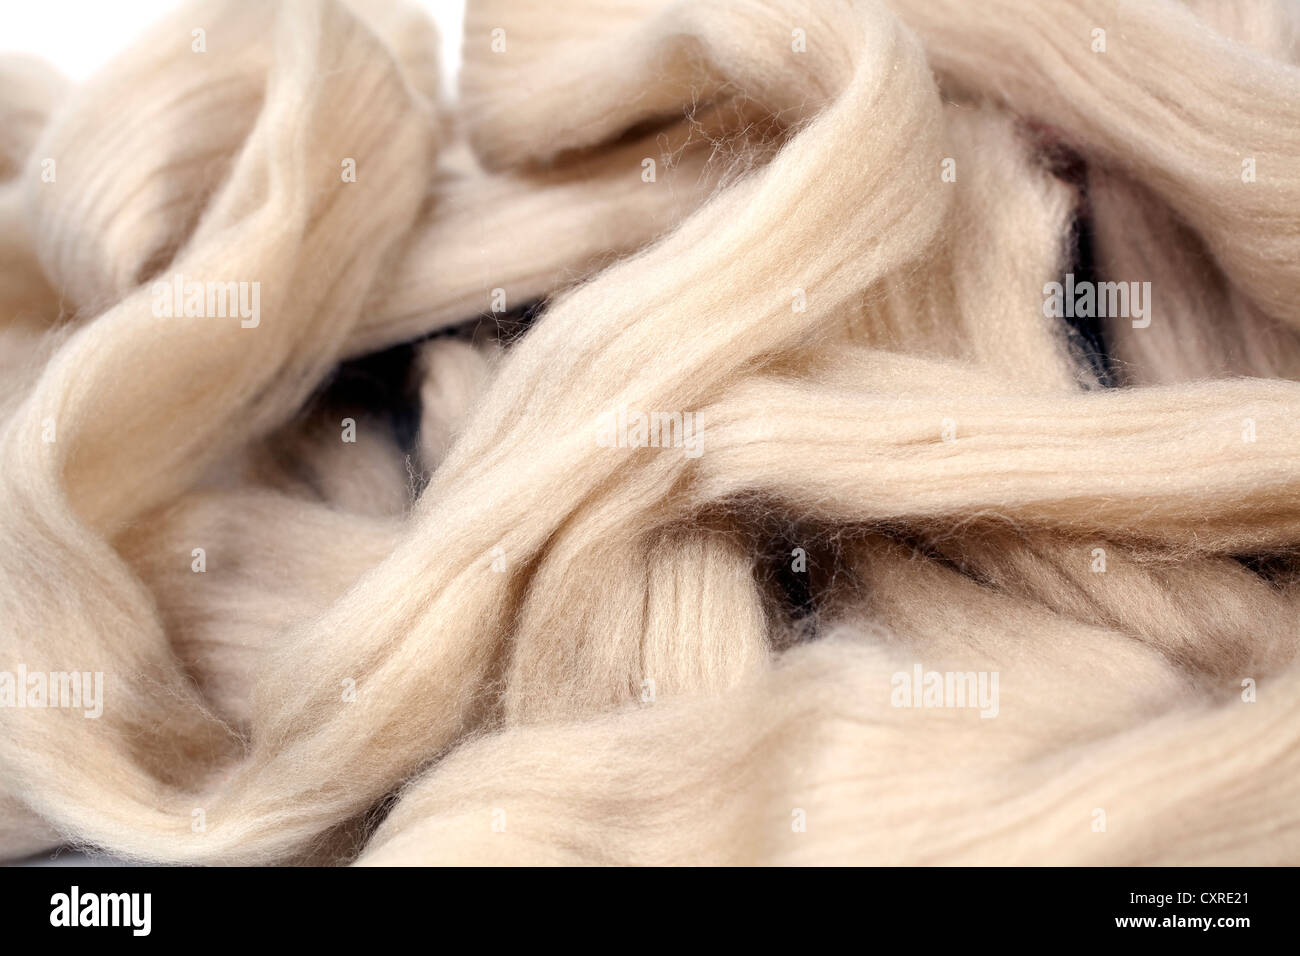 Viscose fibres for the production of clothing - Stock Image